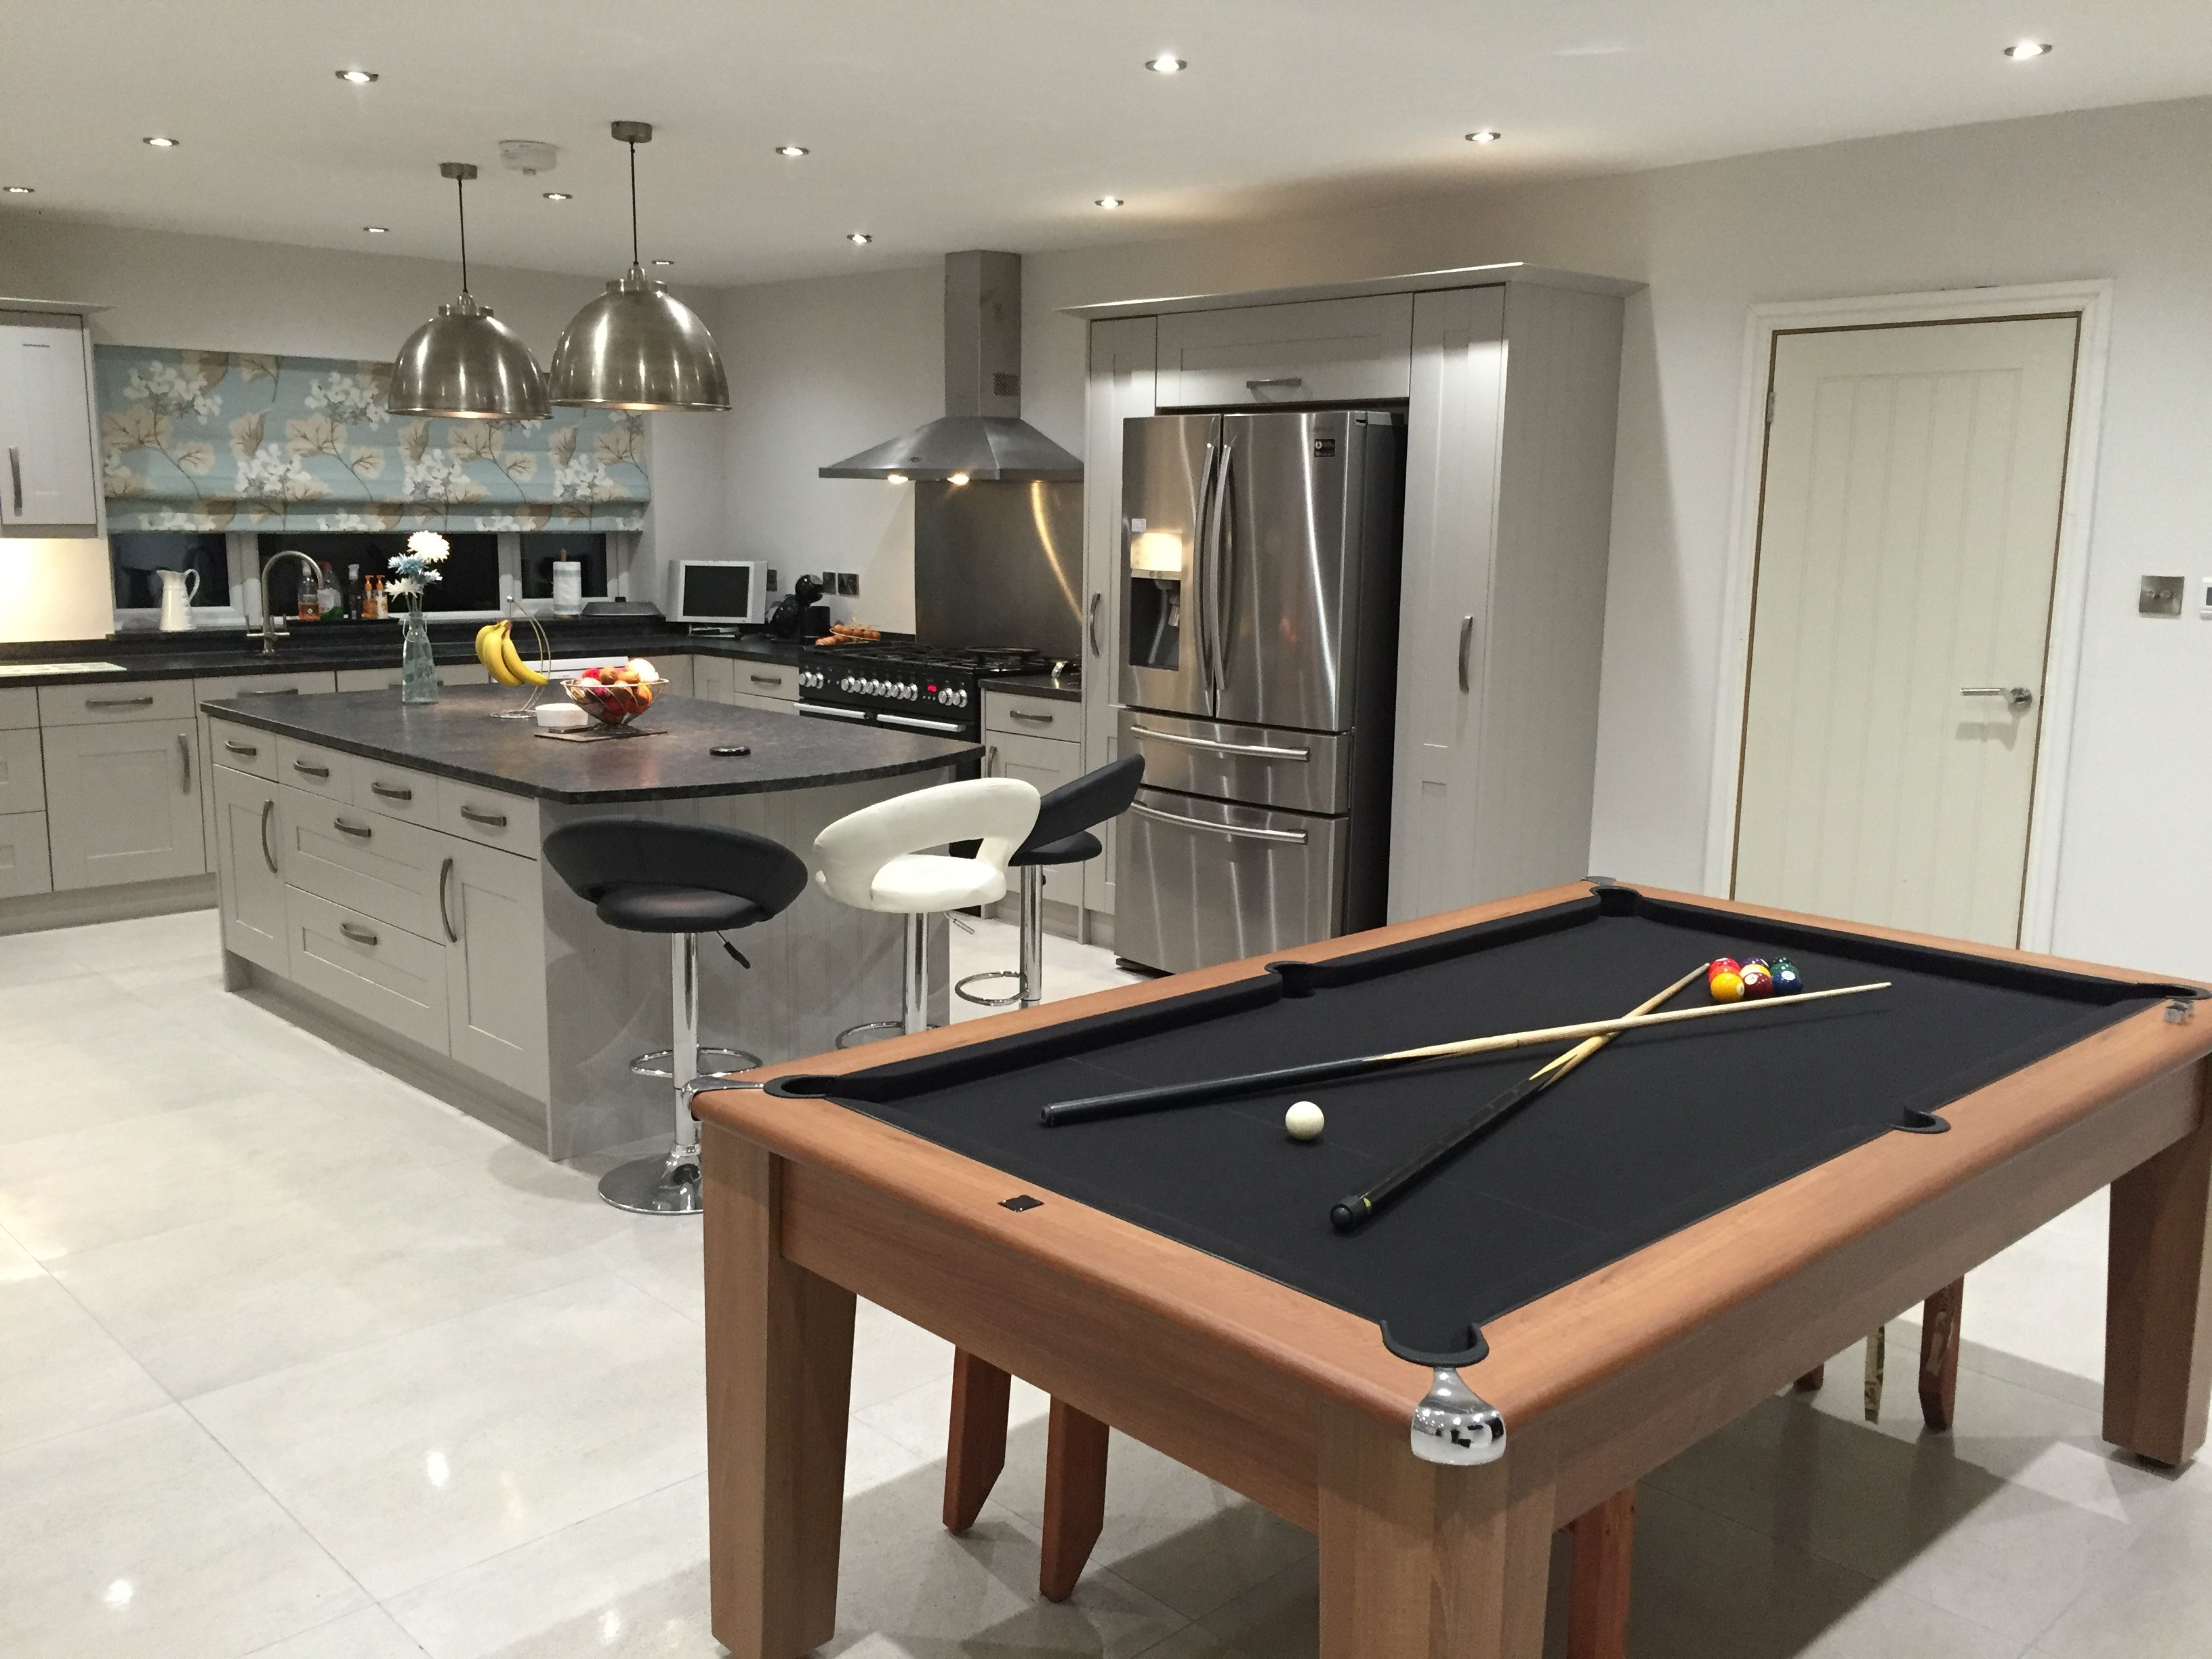 Grey Shaker Kitchen Units With Leathered Granite Worktop Barstools